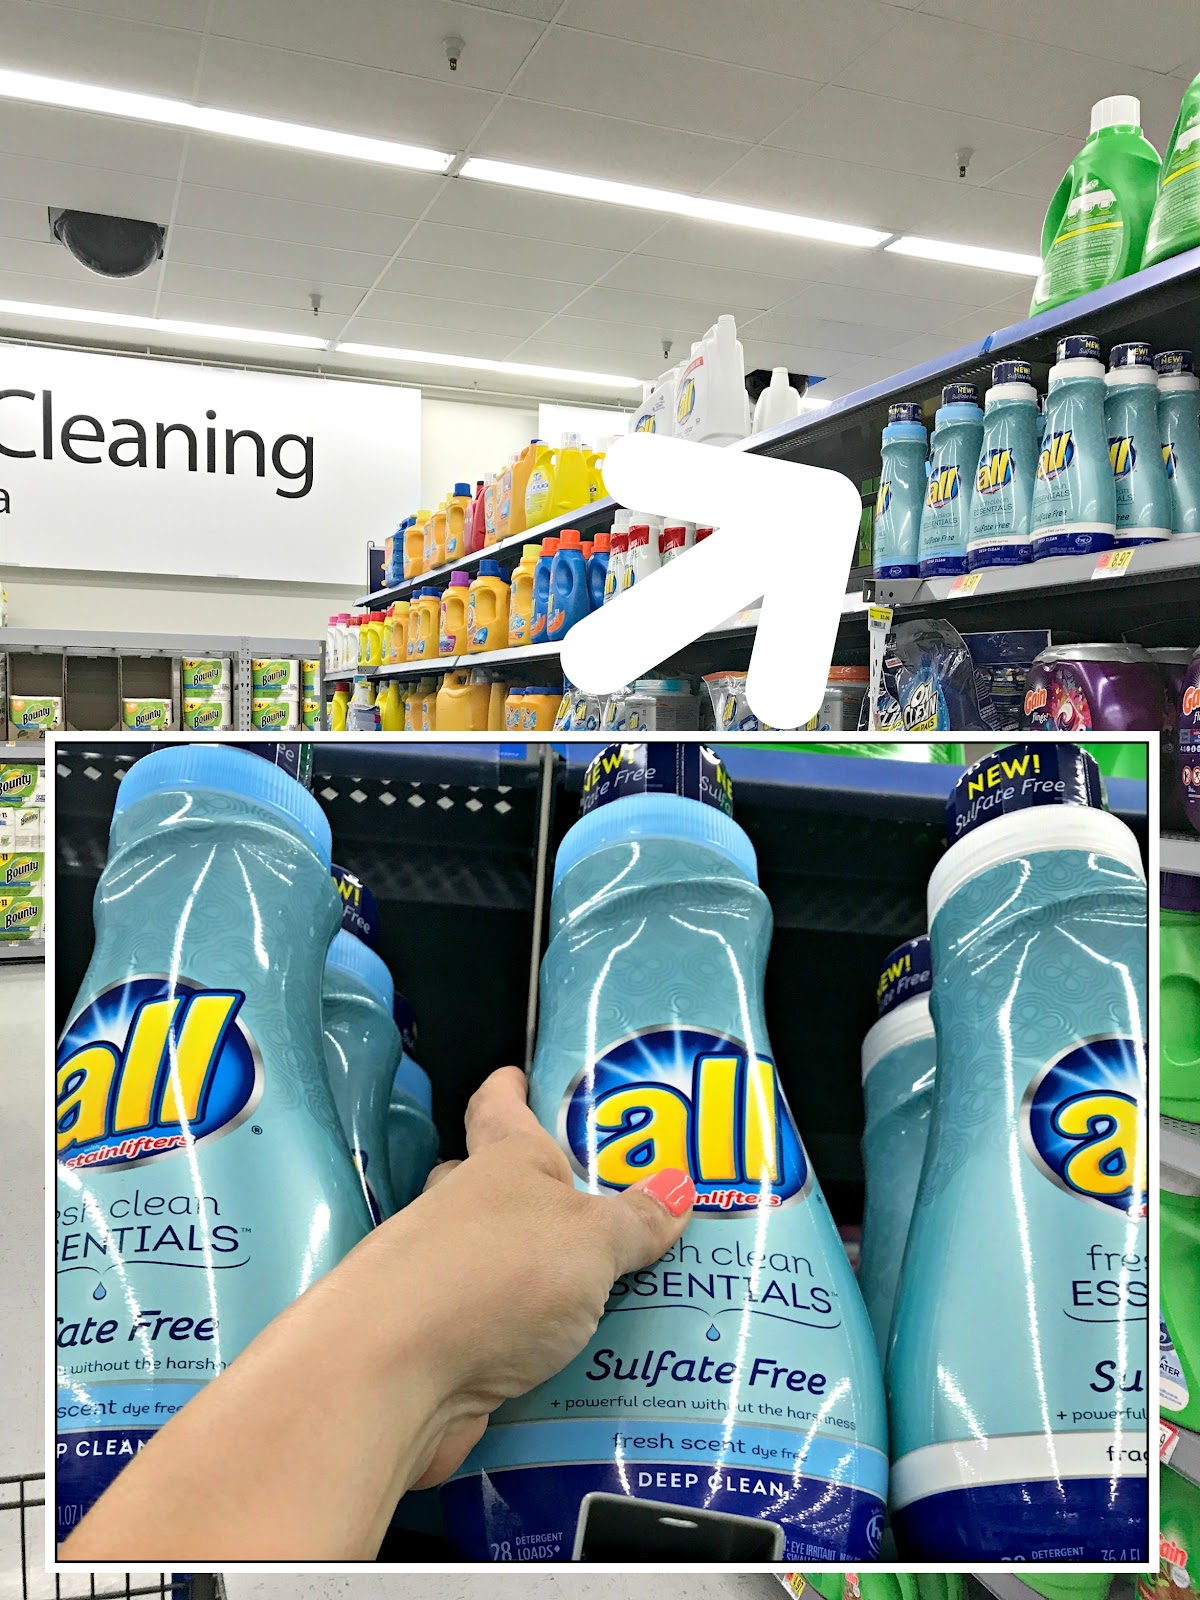 #FreeOfSulfates #ad Camper Basket to go, Cleaning basket for a camper, How to stay clean camping, Camping hacks to stay clean, AVEENO PURE RENEWAL® coupon, all® fresh clean ESSENTIALS® coupon, Sulfate free laundry detergent, sulfate free shampoo and conditionerIMG_2416.jpg